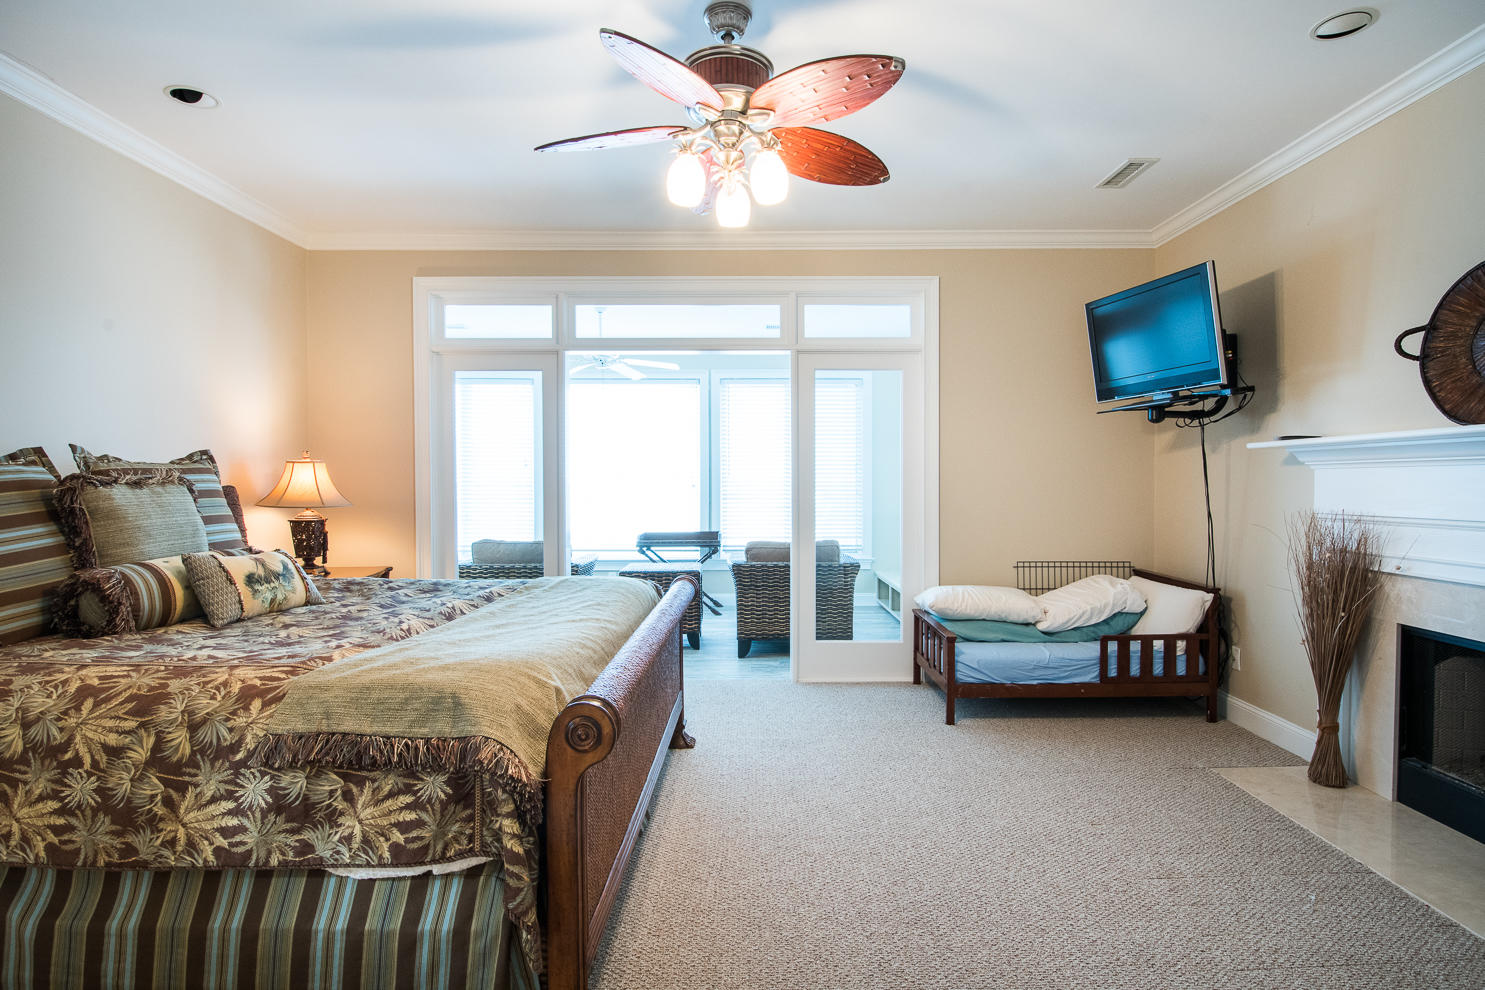 Tolers Cove Homes For Sale - B-4 & B-5 Tolers Cove Marina 70ft + Home, Mount Pleasant, SC - 23